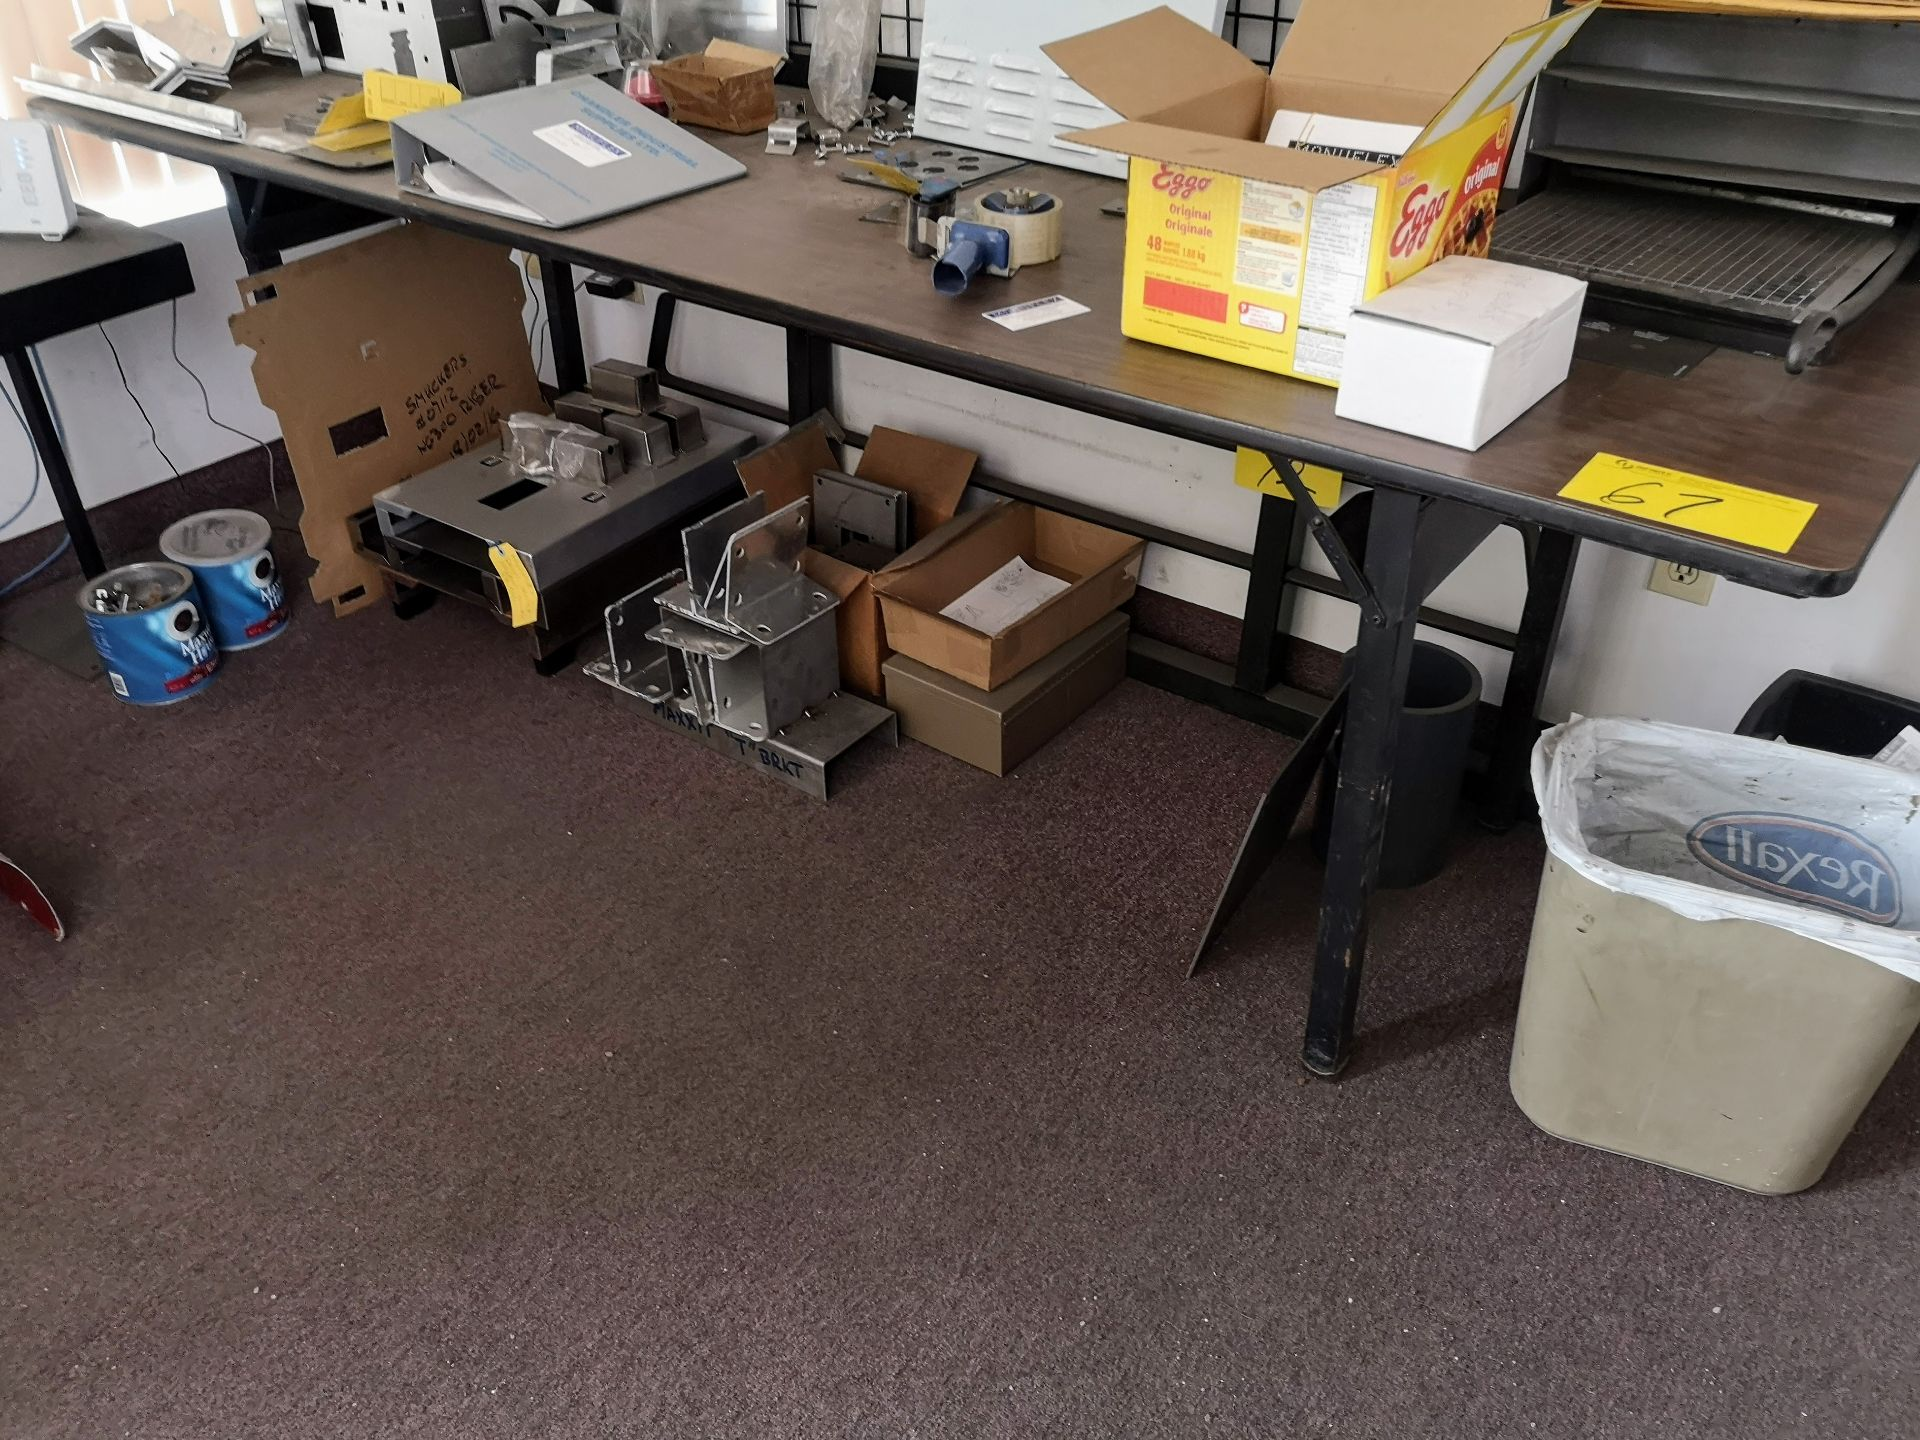 Lot 67 - CONTENTS OF OUTTER OFFICE (NO PERSONAL EFFECTS OR COMPUTER EQUIPMENT)